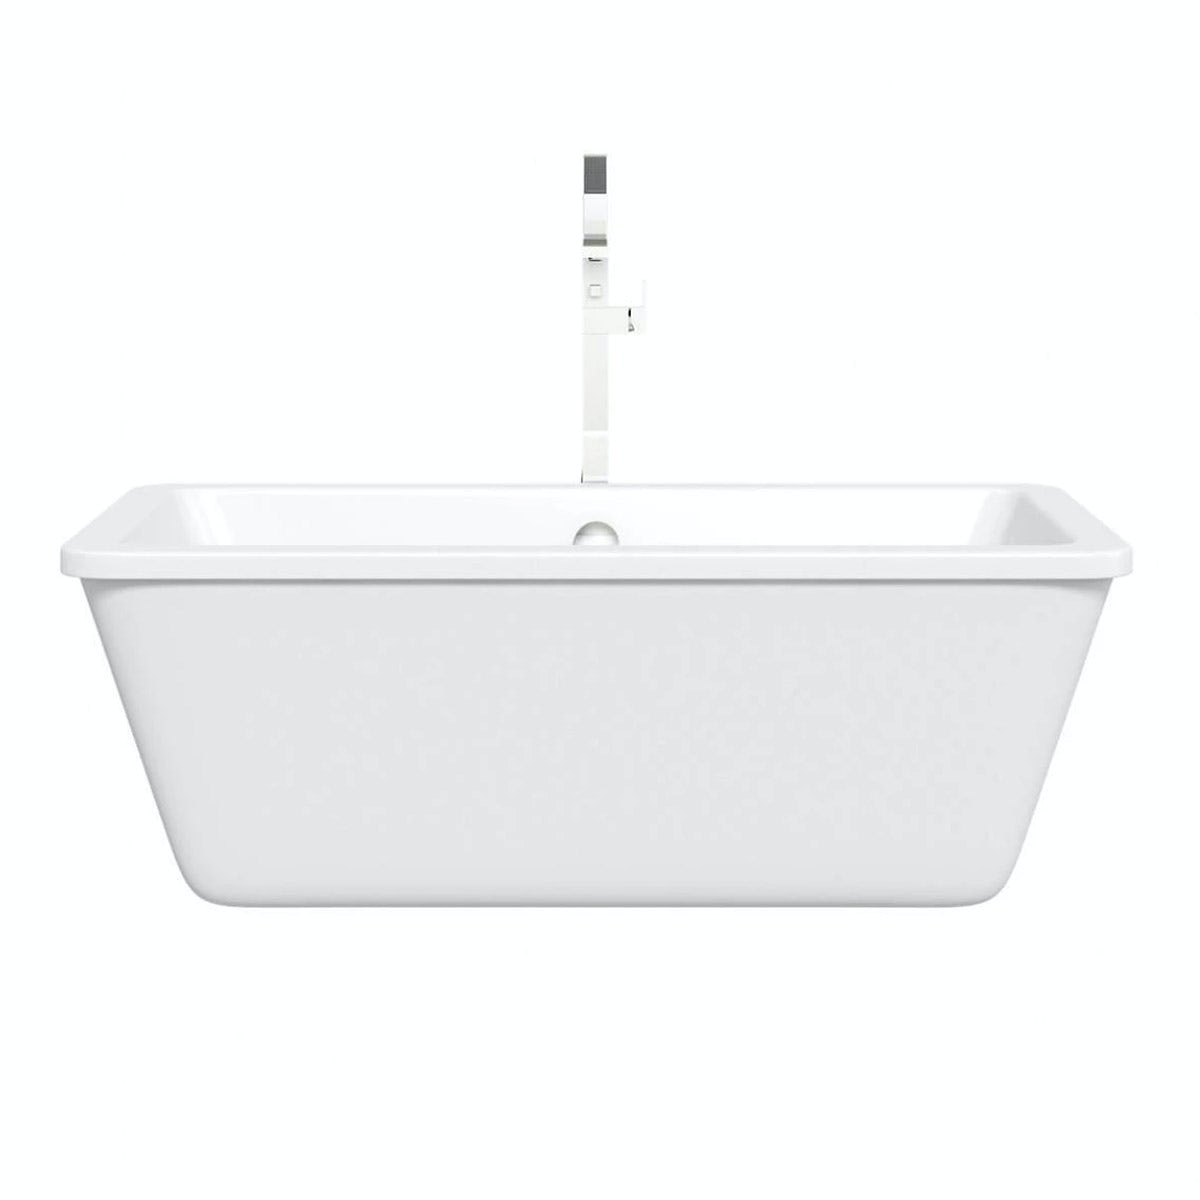 harvard freestanding bath 1500 x 780 offer pack